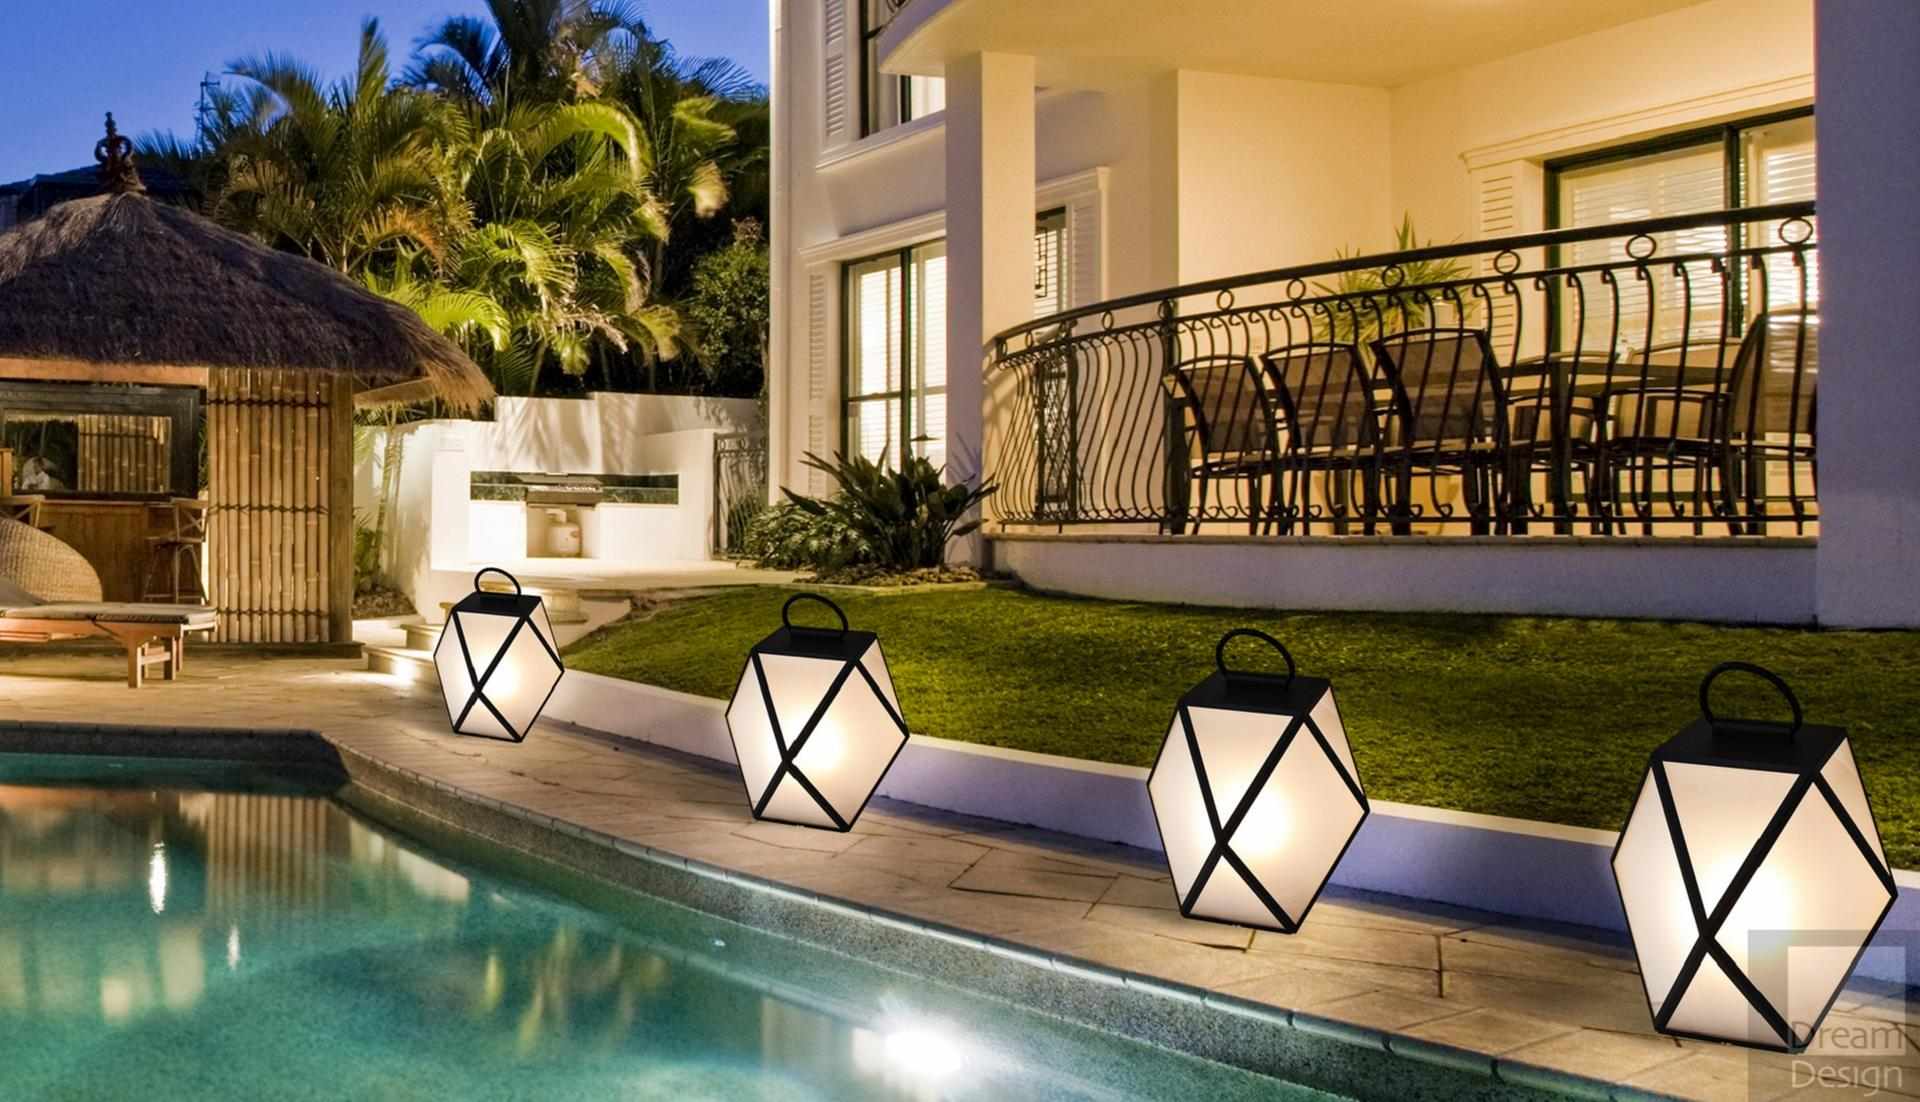 Summer outdoor lighting ideas luxurious interiors Luxurious Interiors Inspired by Louis-Era French Design Summer outdoor lighting ideas luxurious interiors Luxurious Interiors Inspired by Louis-Era French Design Summer outdoor lighting ideas